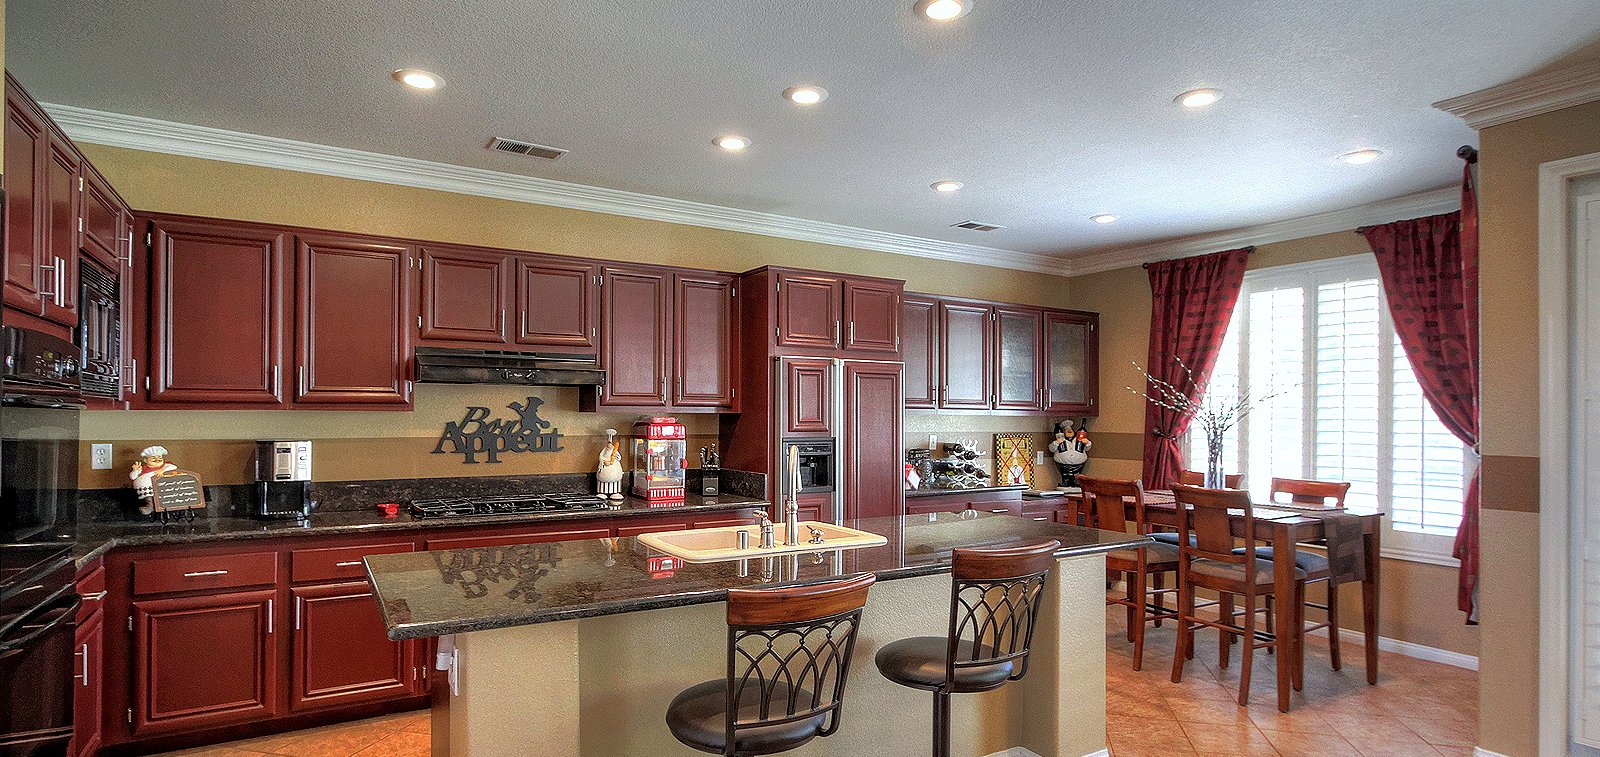 THE HENSLEY GROUP REAL ESTATE - spacious dining area and kitchen